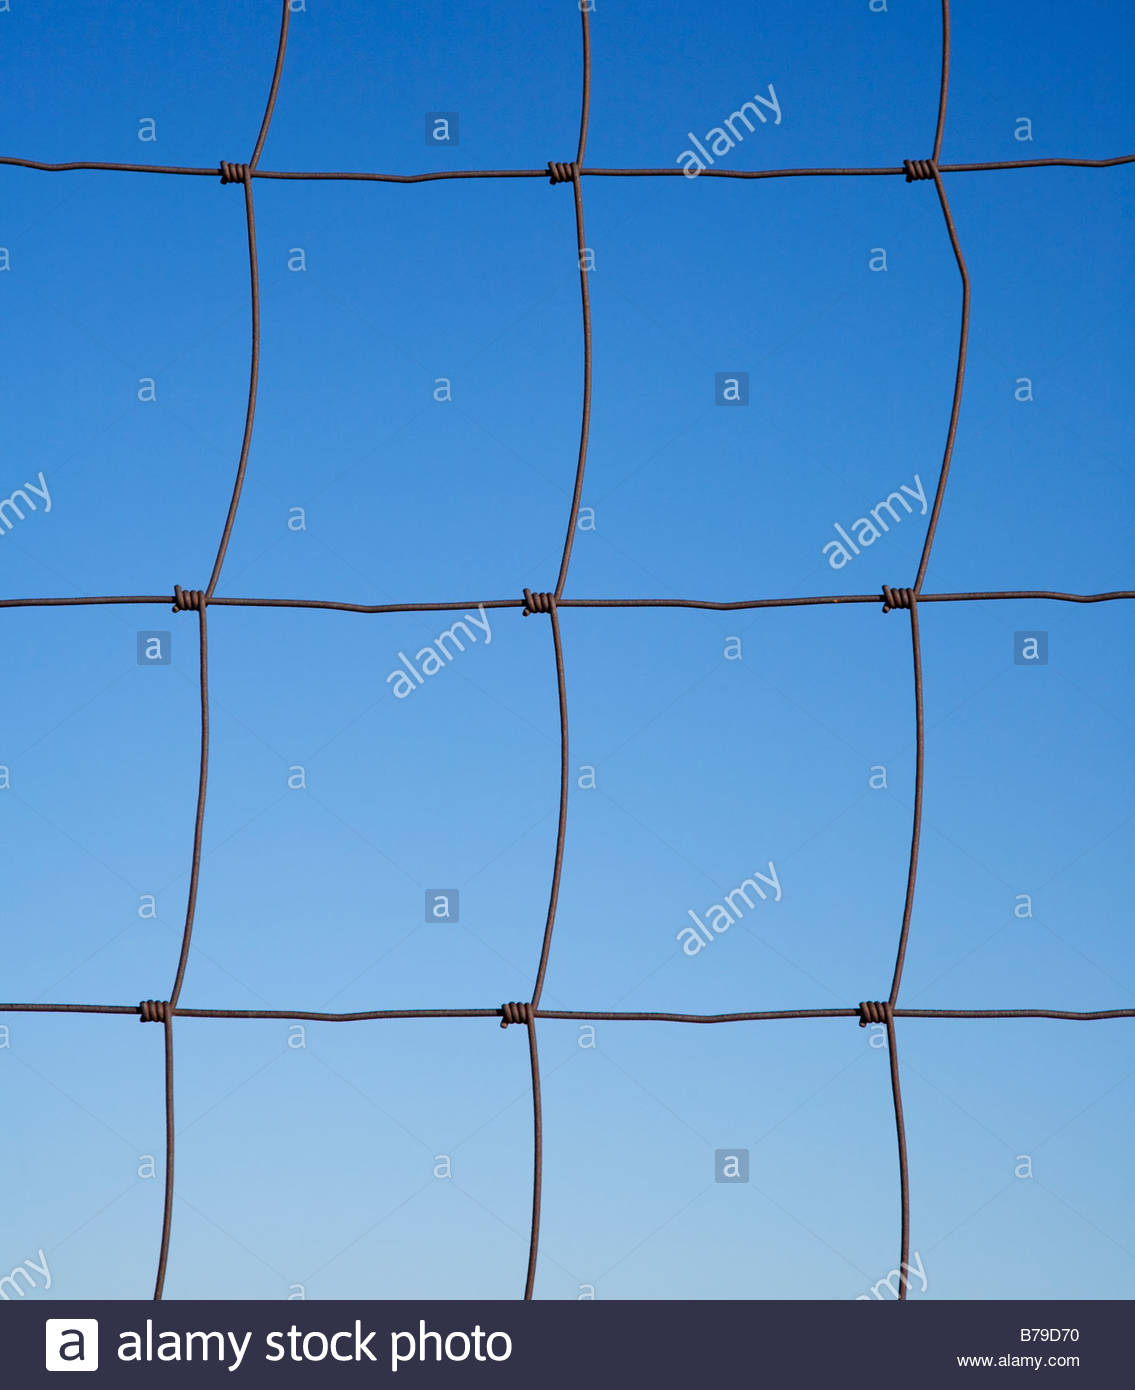 Rusty woven wire fence blue sky background - Stock Image